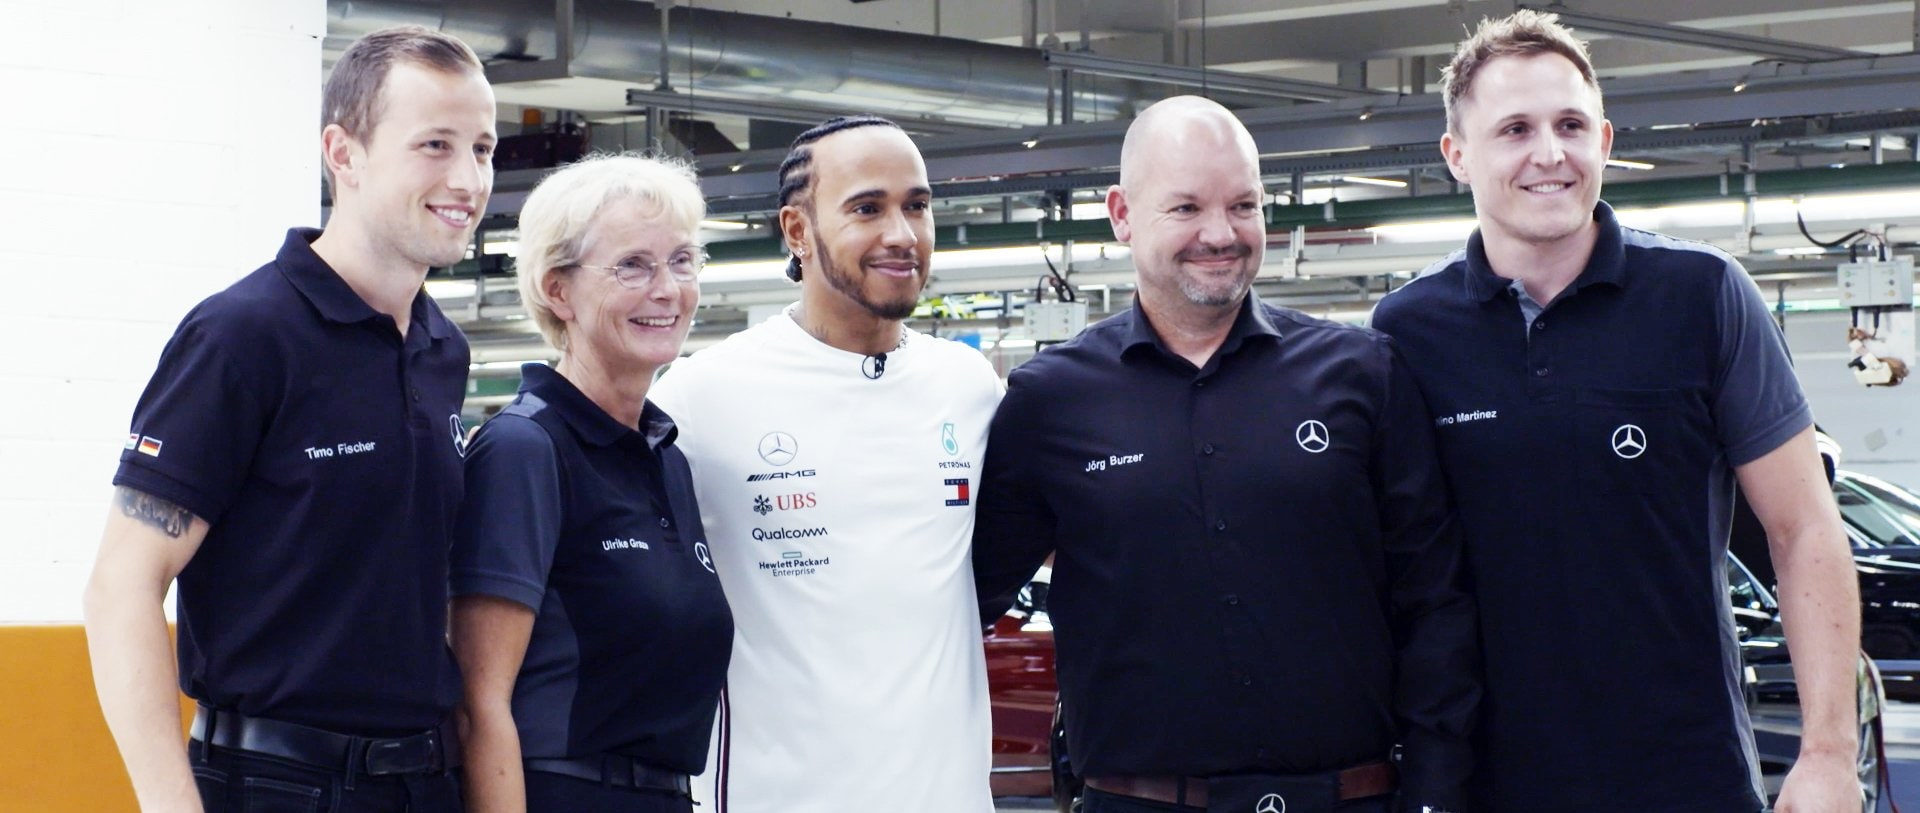 Lewis Hamilton stands with some employees of Mercedes-Benz in the Mercedes-Benz plant Sindelfingen and smiles into the camera.